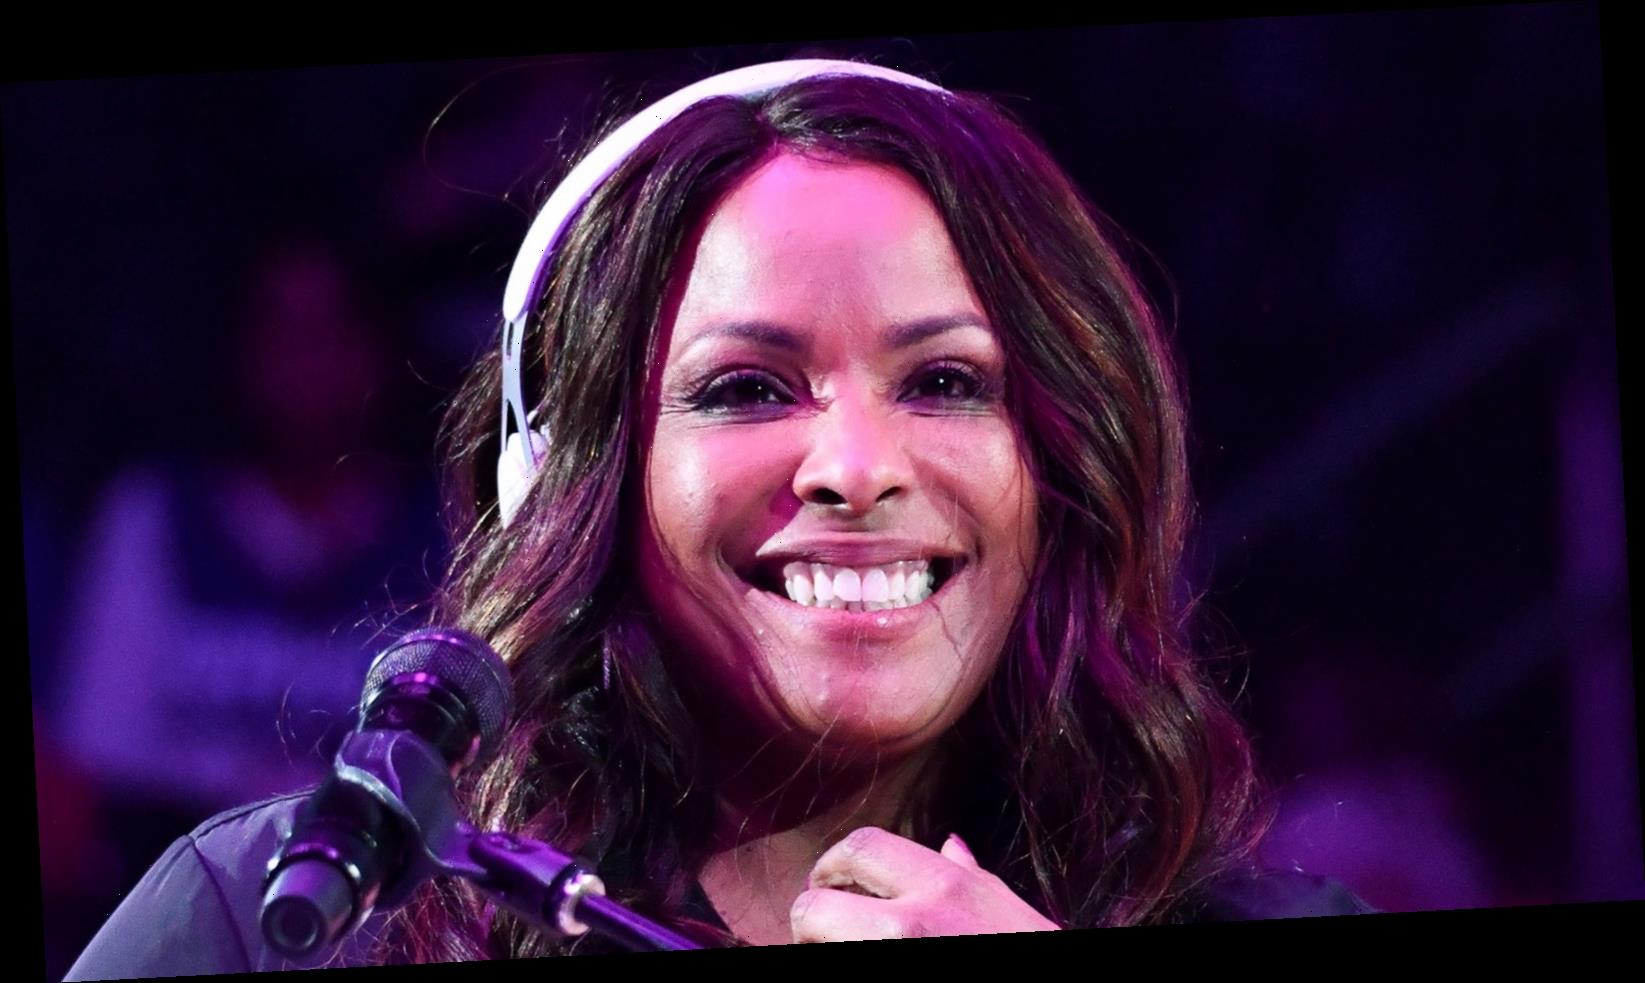 Who Is DJ Spinderella Engaged To? – Nicki Swift